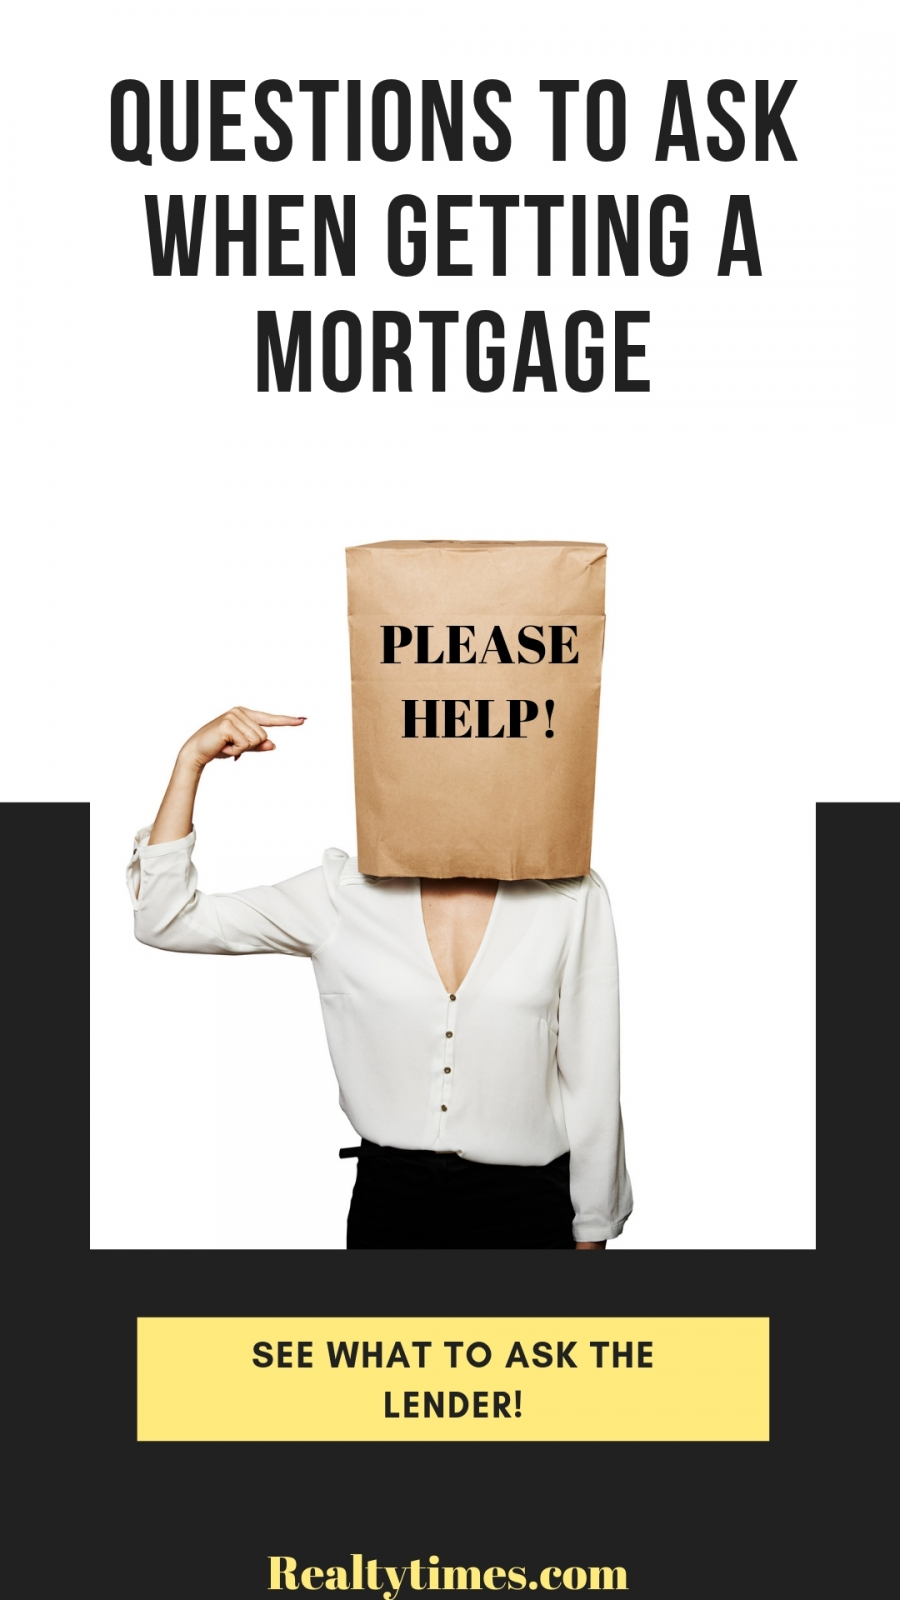 Questions to Ask When Getting a Mortgage